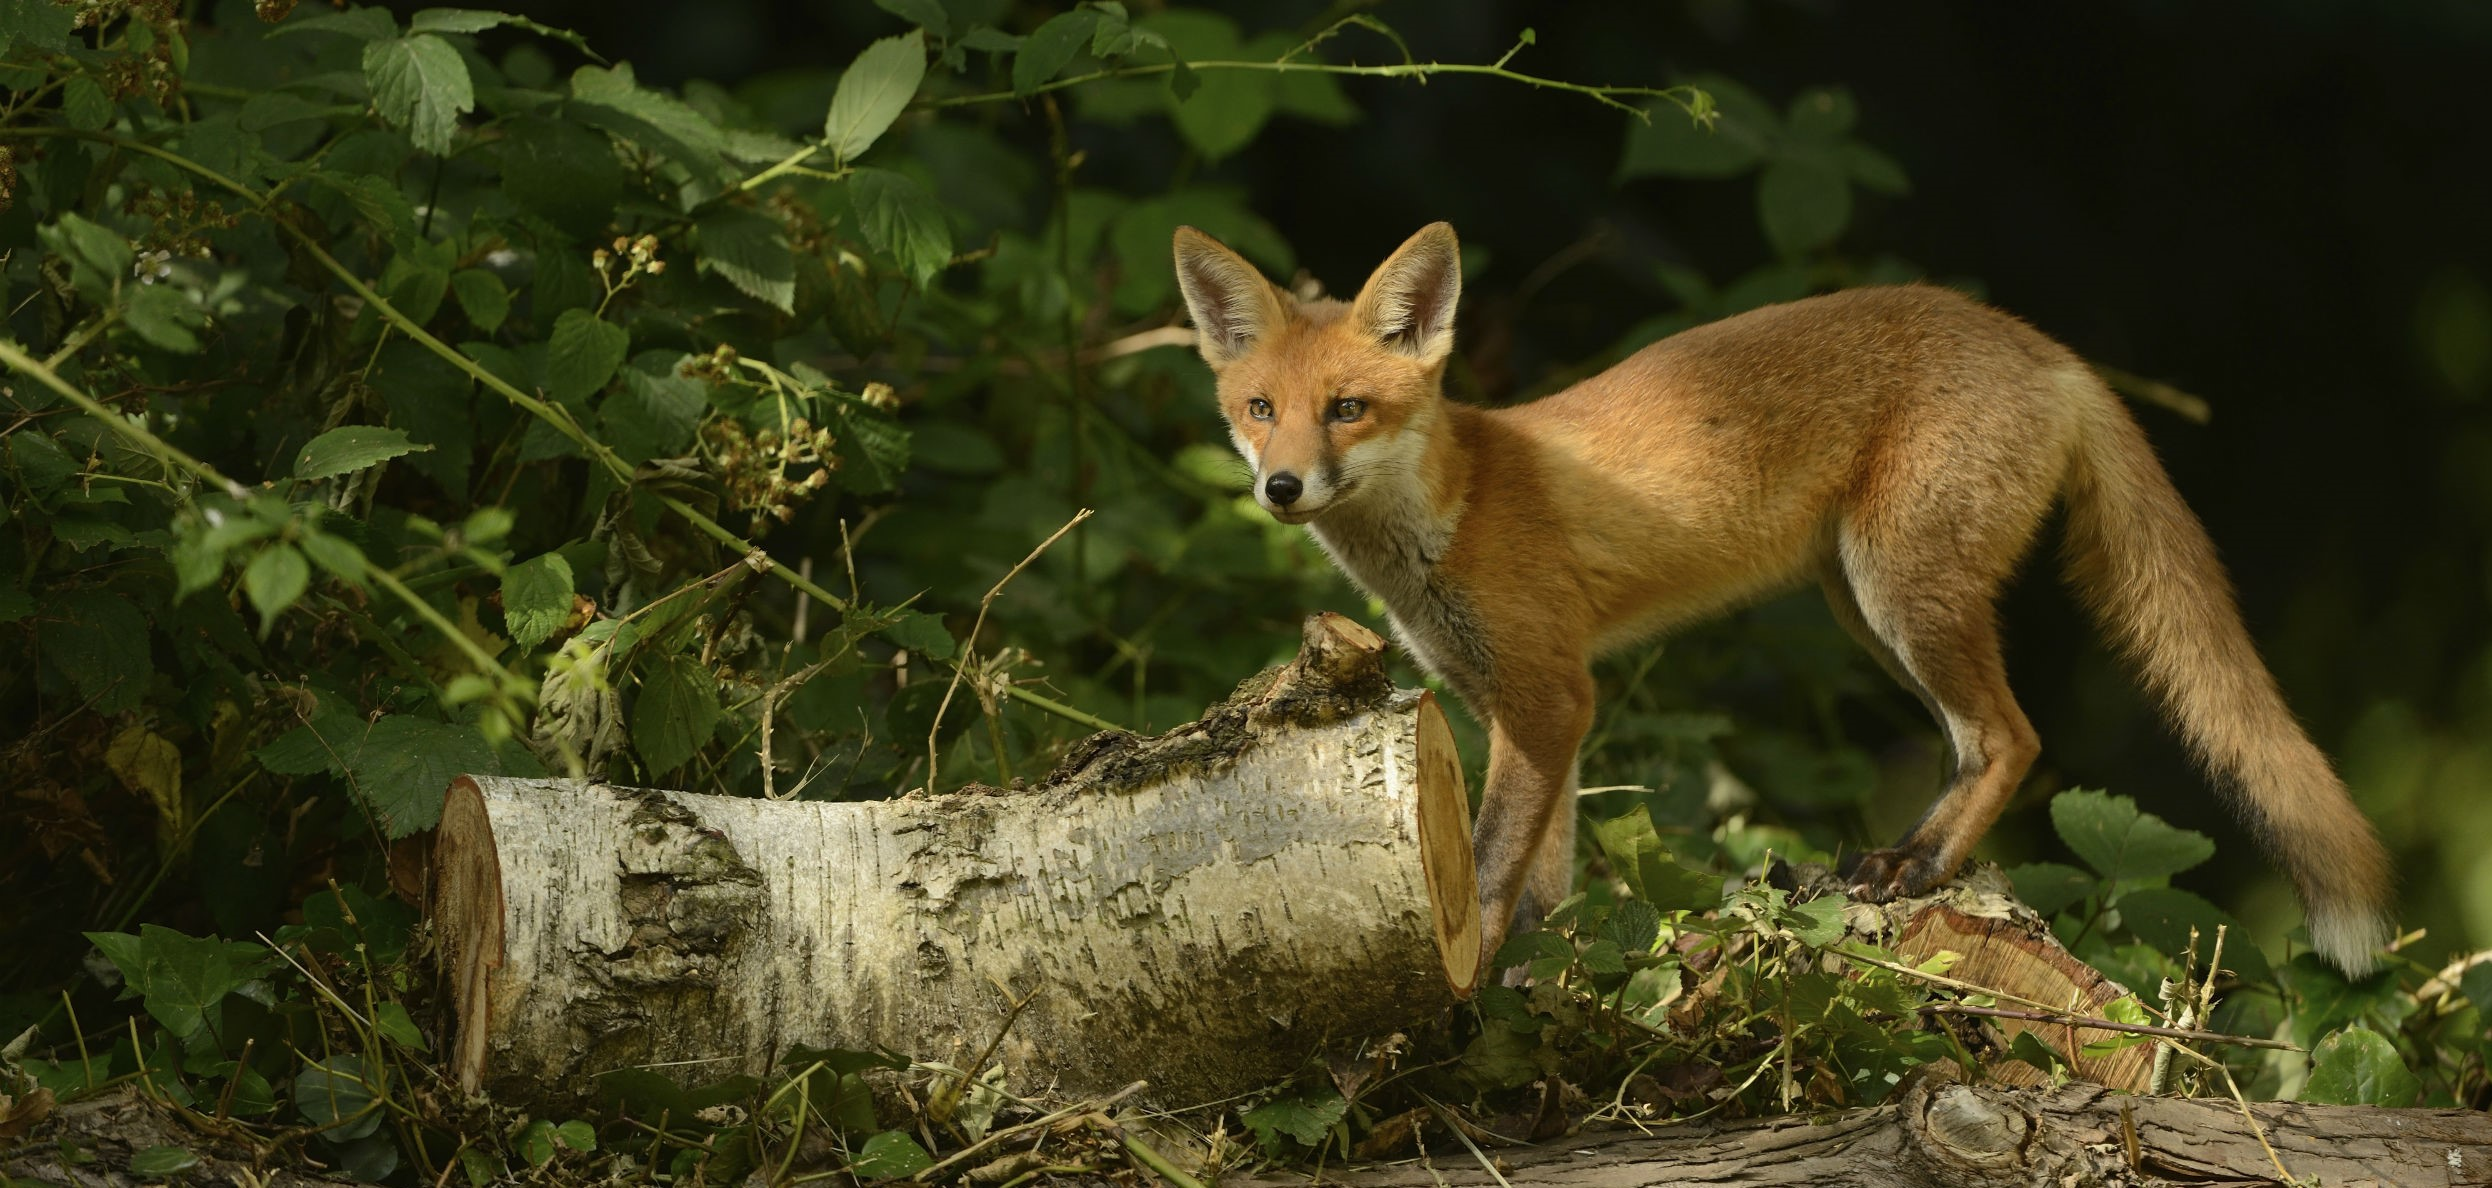 Find out how animals use their sense of smell to survive Fox Barking Audio on fox landing, fox running away, fox and coyotes pets, fox and their pups, fox sounds bark, fox north america, fox shedding, fox stealing food, fox looking up, fox pin, fox digging, fox tail up, fox reading, fox charm, fox aggressive behavior, fox being chased, fox behavioral and characteristics, fox and hedgehog, fox crying sound, fox and hen,